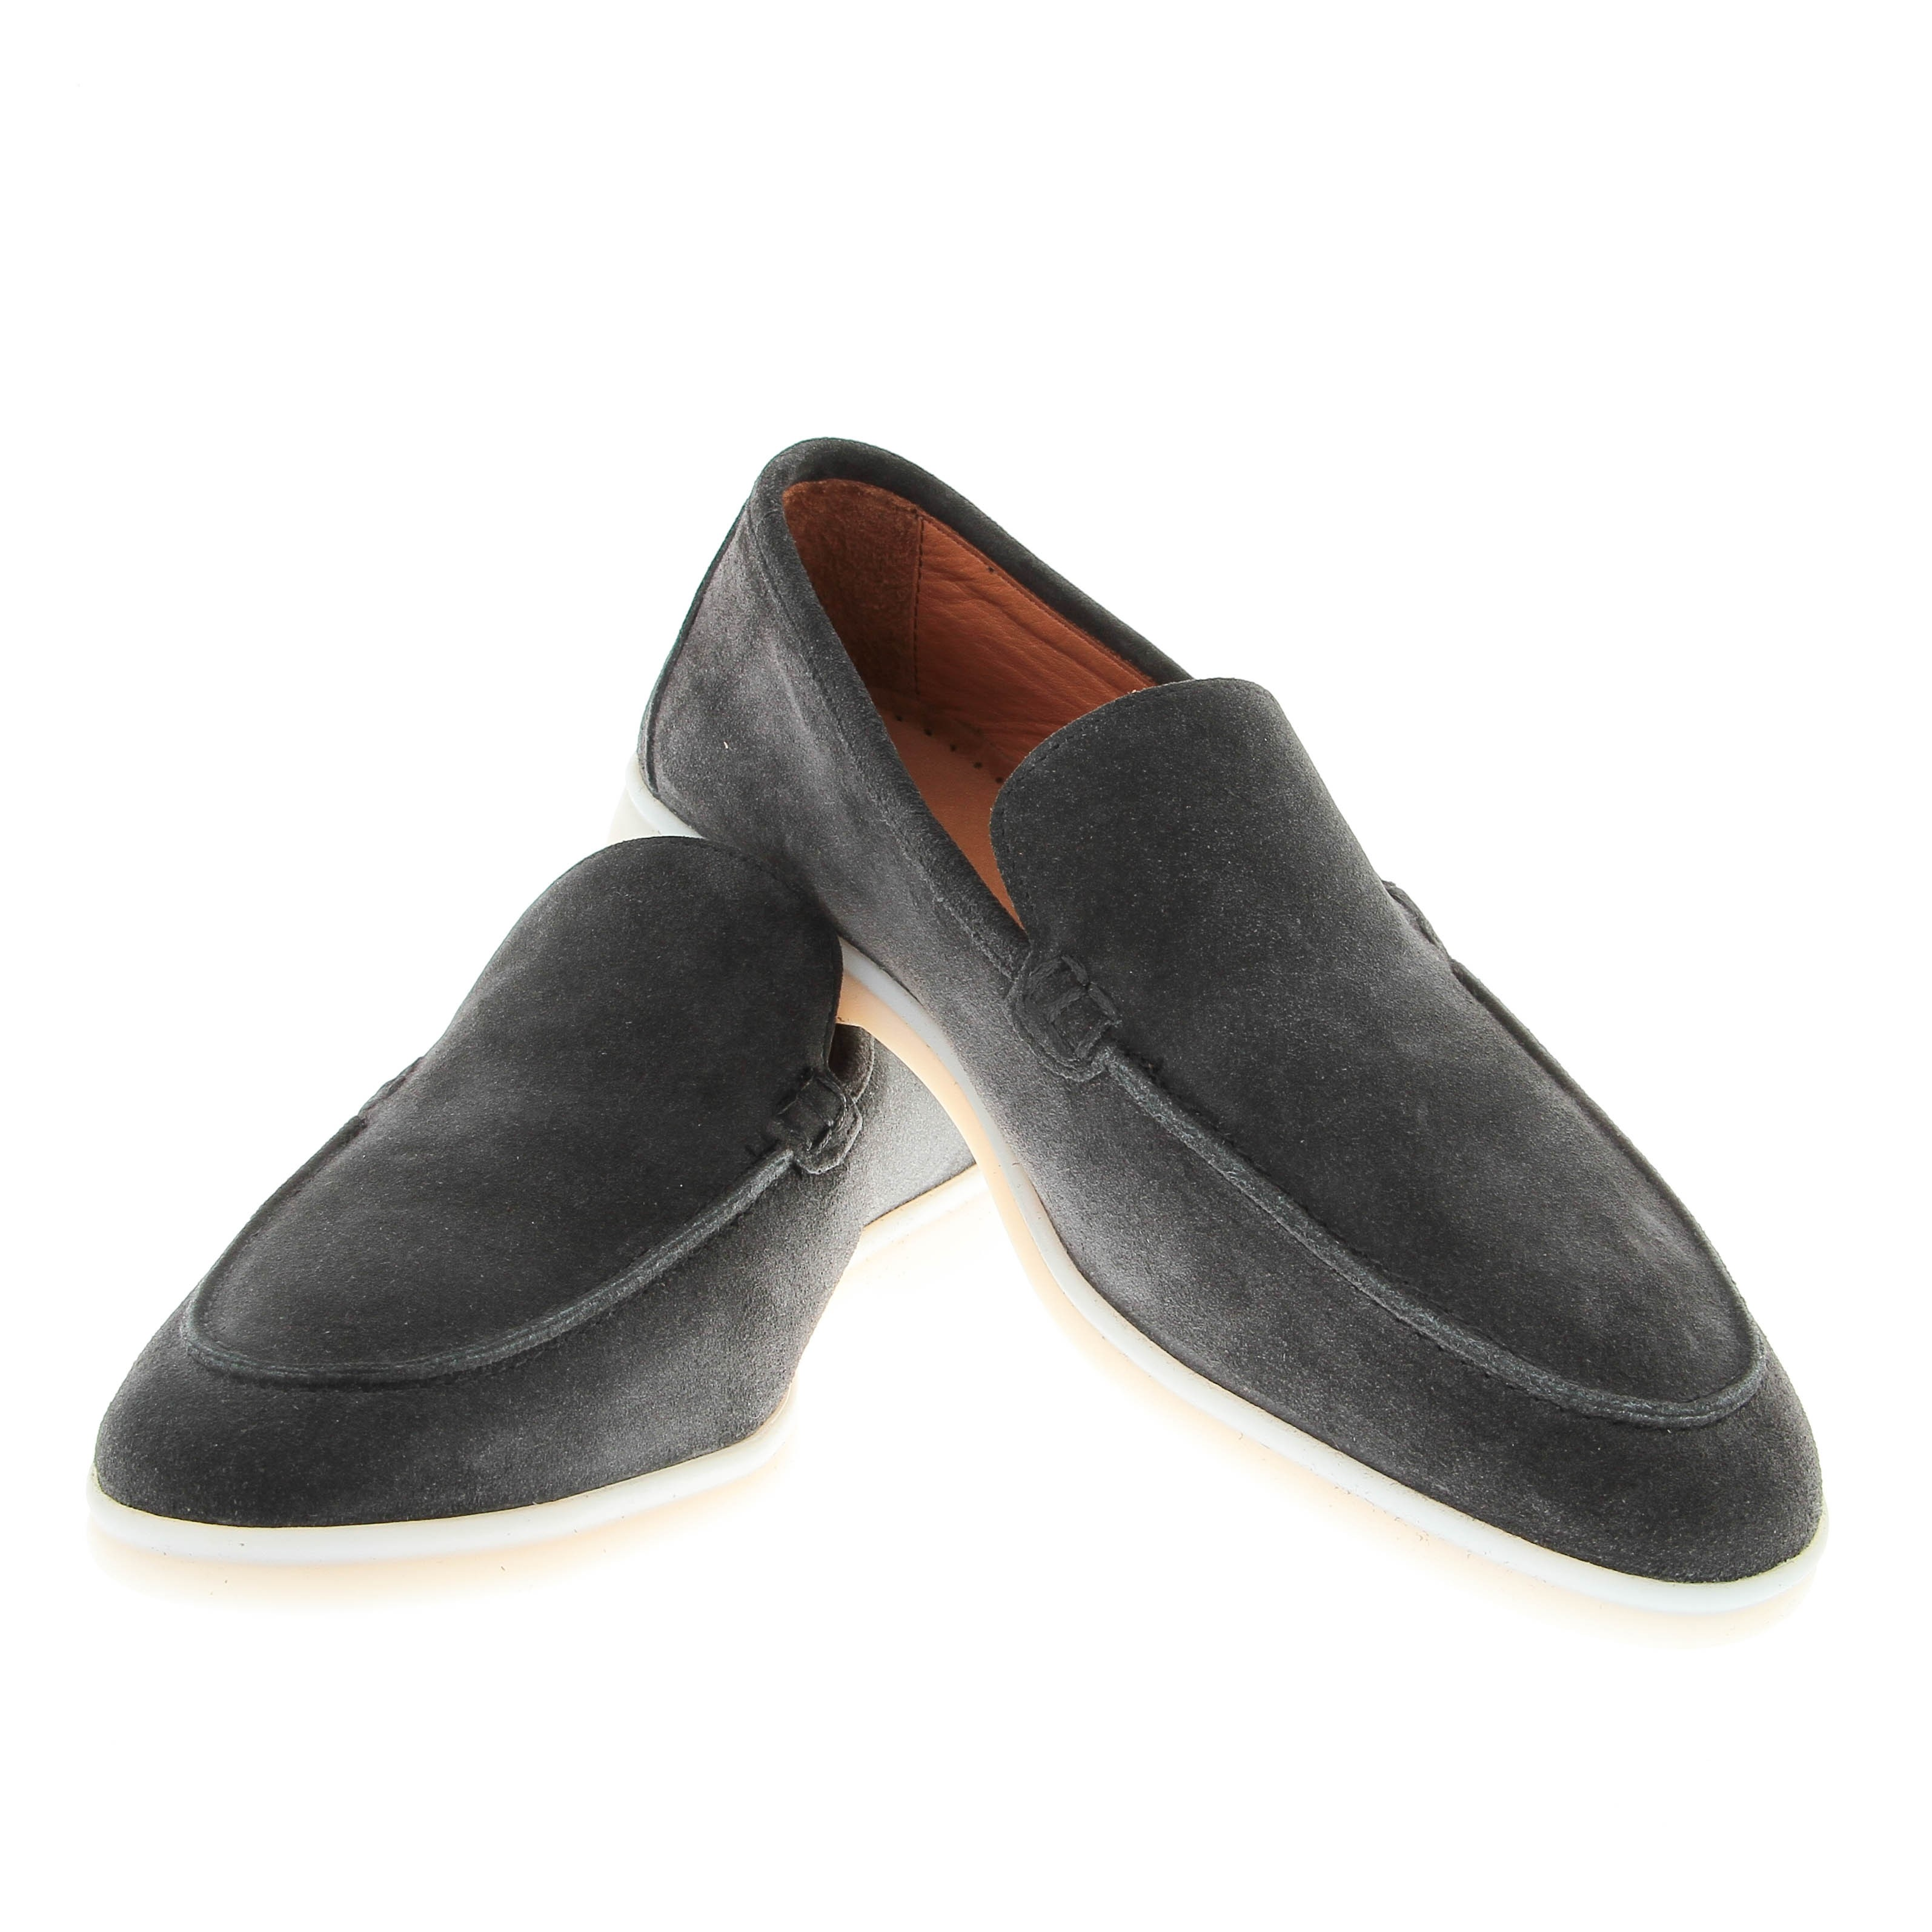 Mocassins : Anthracite - Veau Velours - Made in Italy